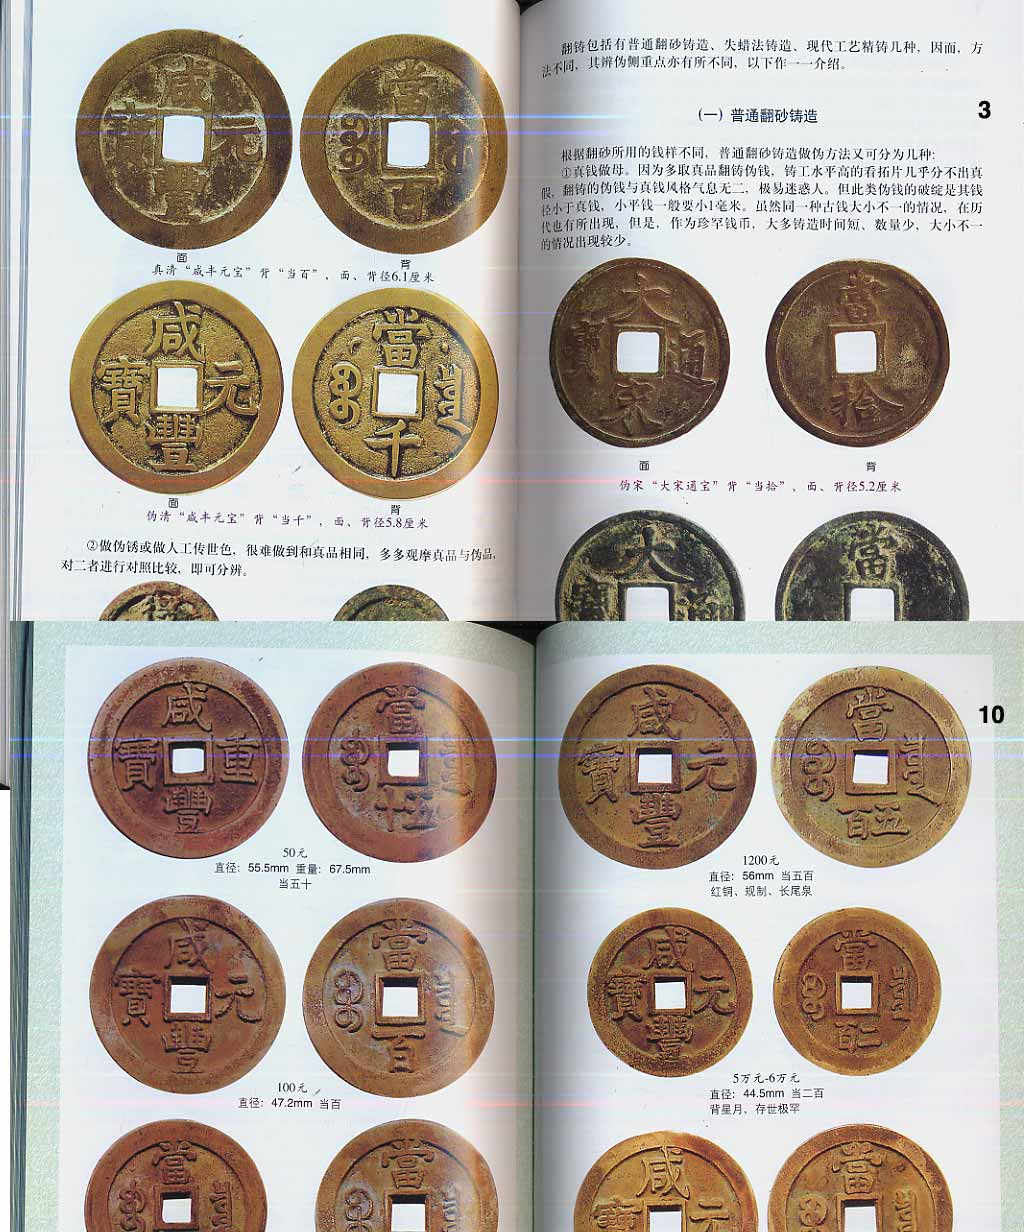 worksheet Coin Identifier similiar old coin identification keywords ancient chinese coins worth www galleryhip com the hippest pics